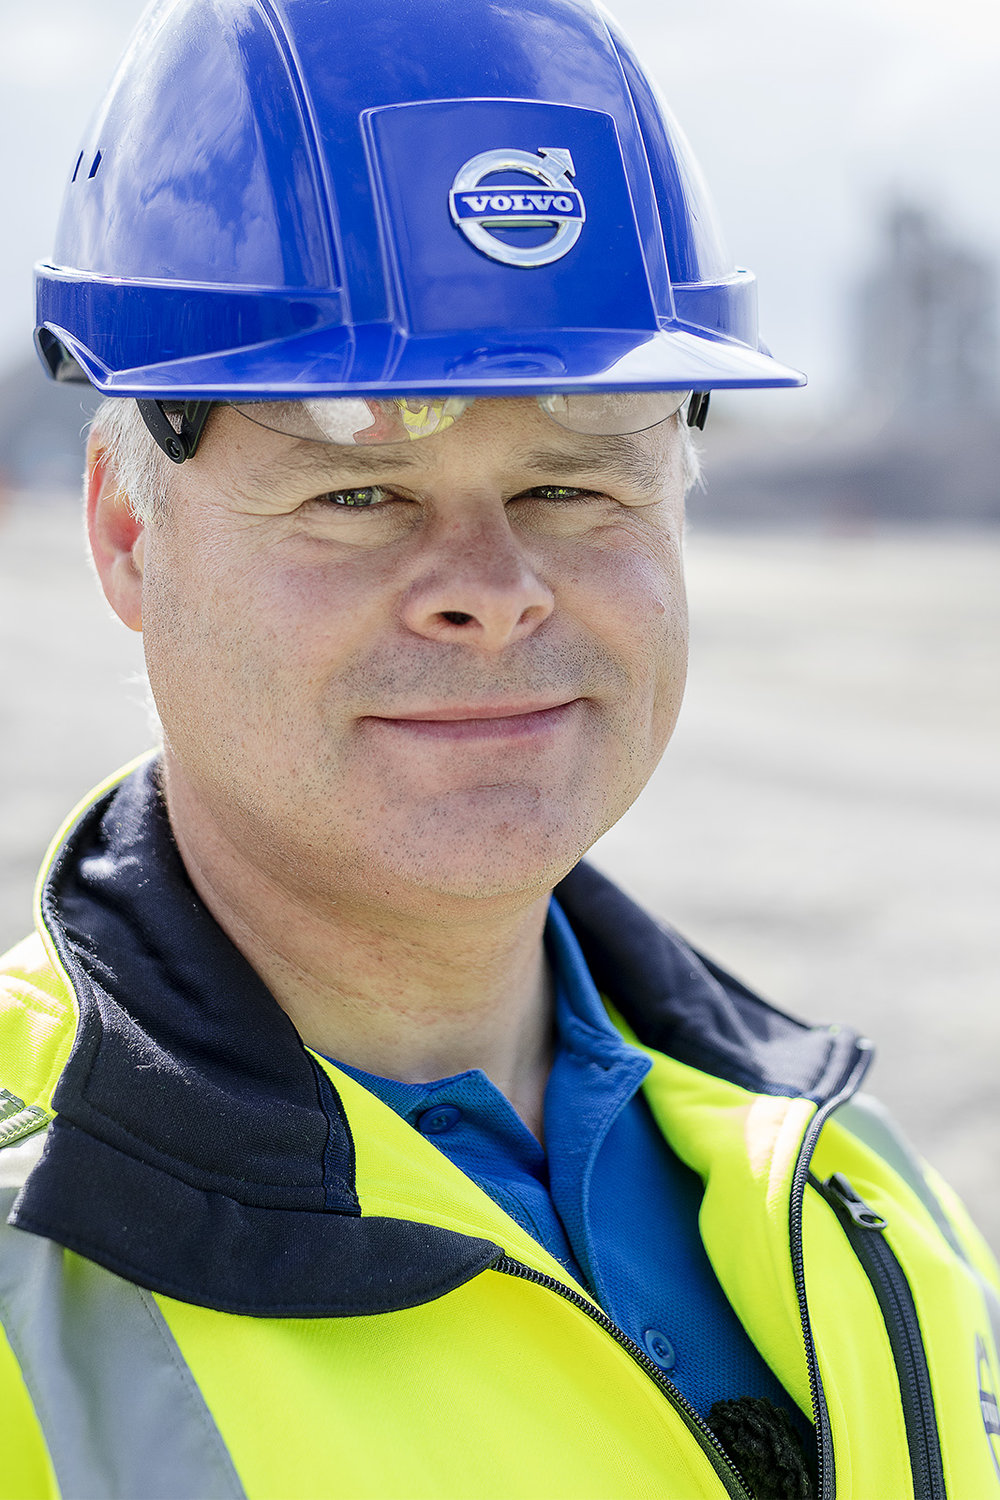 """13-09-2016. GÖTEBORG/GOTHENBURG.The app """"Load Assist"""" installed in the machine. An application of the future to help machine operators get smarter and more accurate details of their load.FOTO: Gustav Mårtensson"""